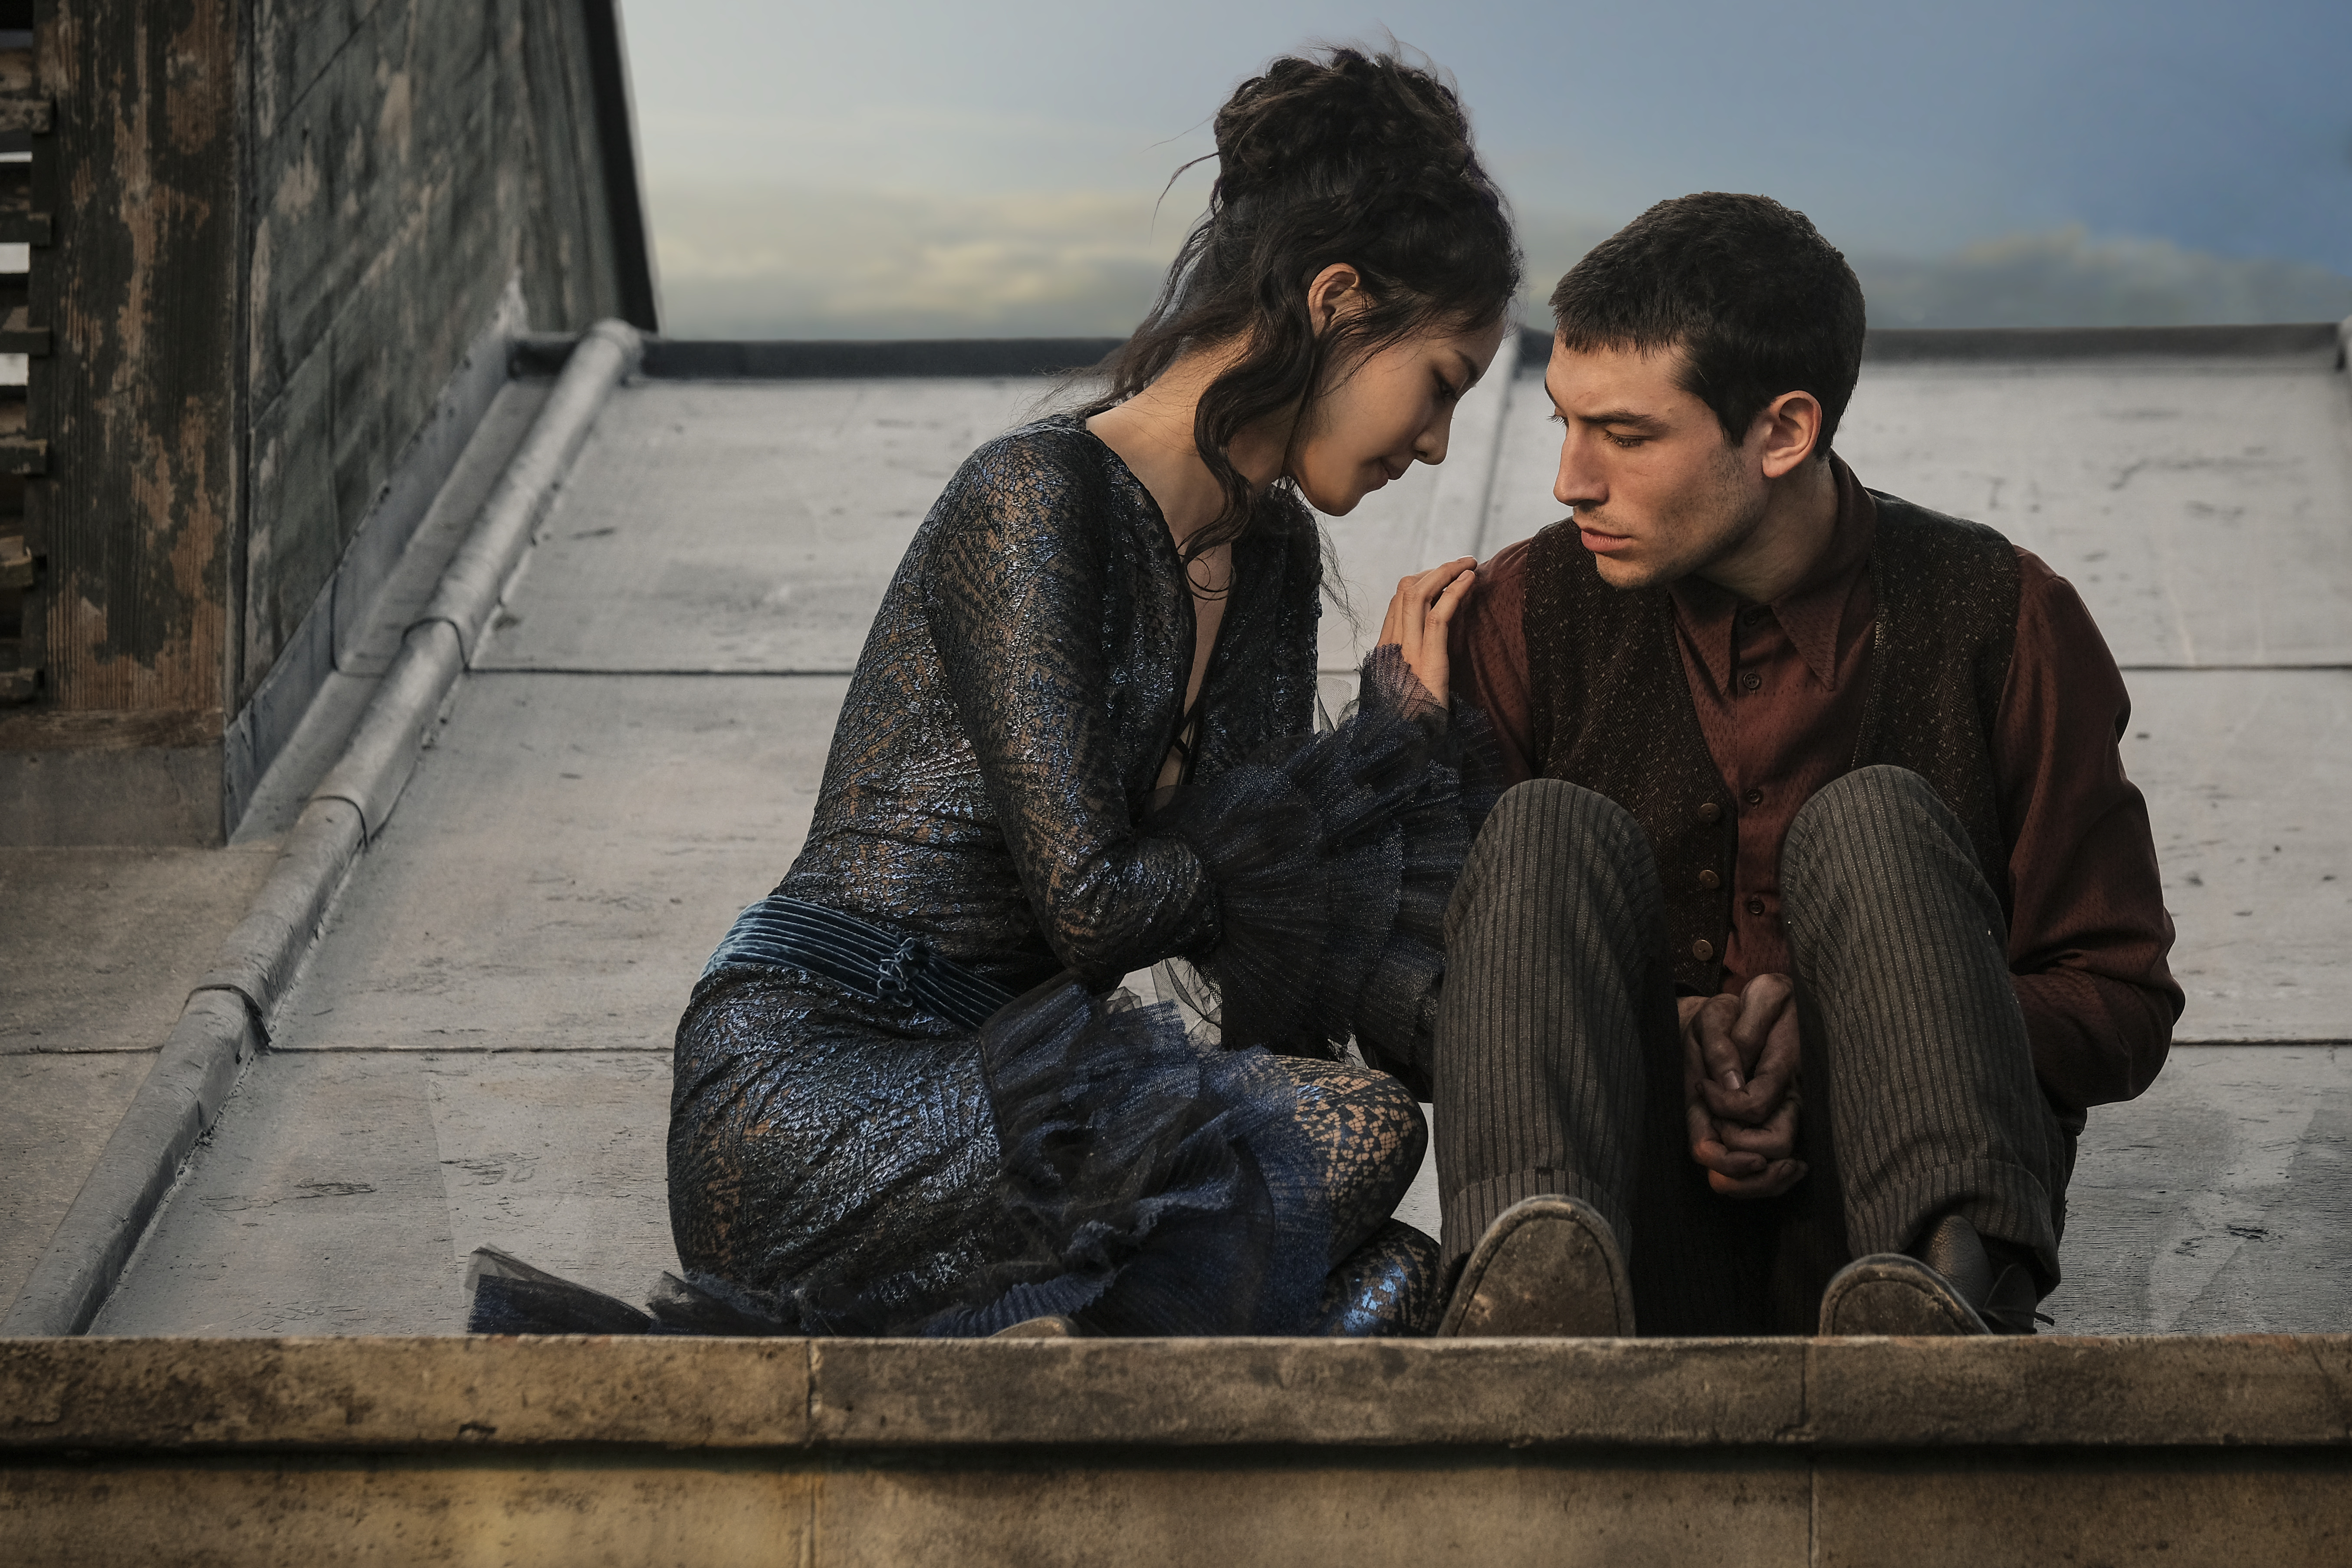 The Maledictus and Credence sit together on a rooftop.